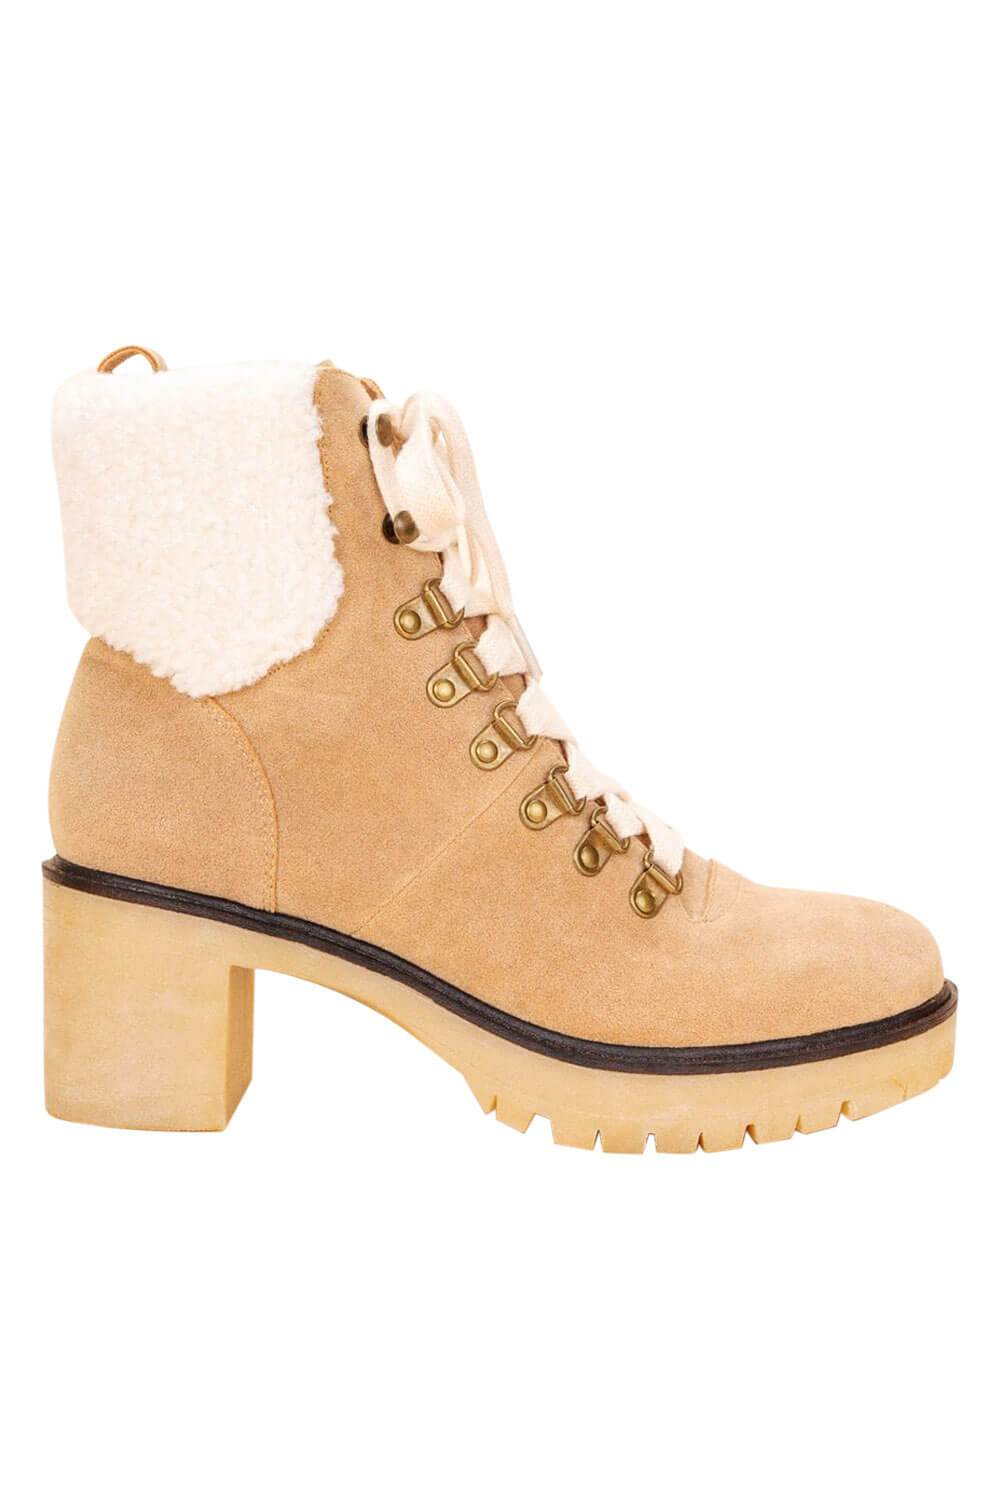 Monroe Shearling Military Bootie khaki side MILK MONEY